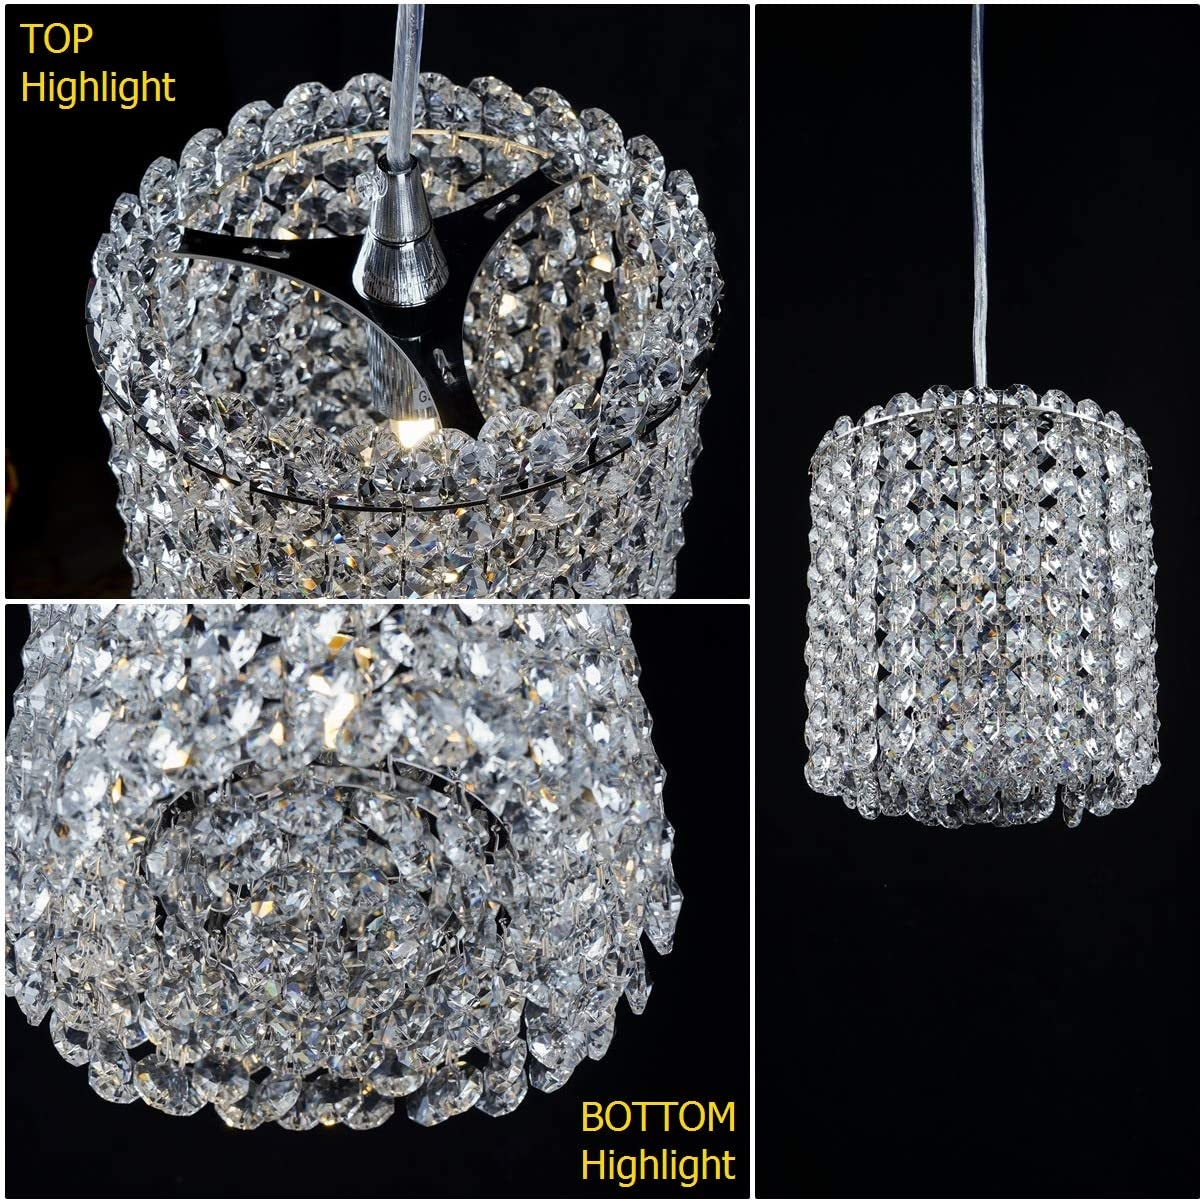 Luenfat Mini Crystal Chandelier Ceiling Lights Fixtures for Kitchen Island, Crystal Pendant Light,6 inch Cylindrical 1 Light Mirror Stainless Steel Chrome,with Clear K9 Crystal Diffuser at Bottom